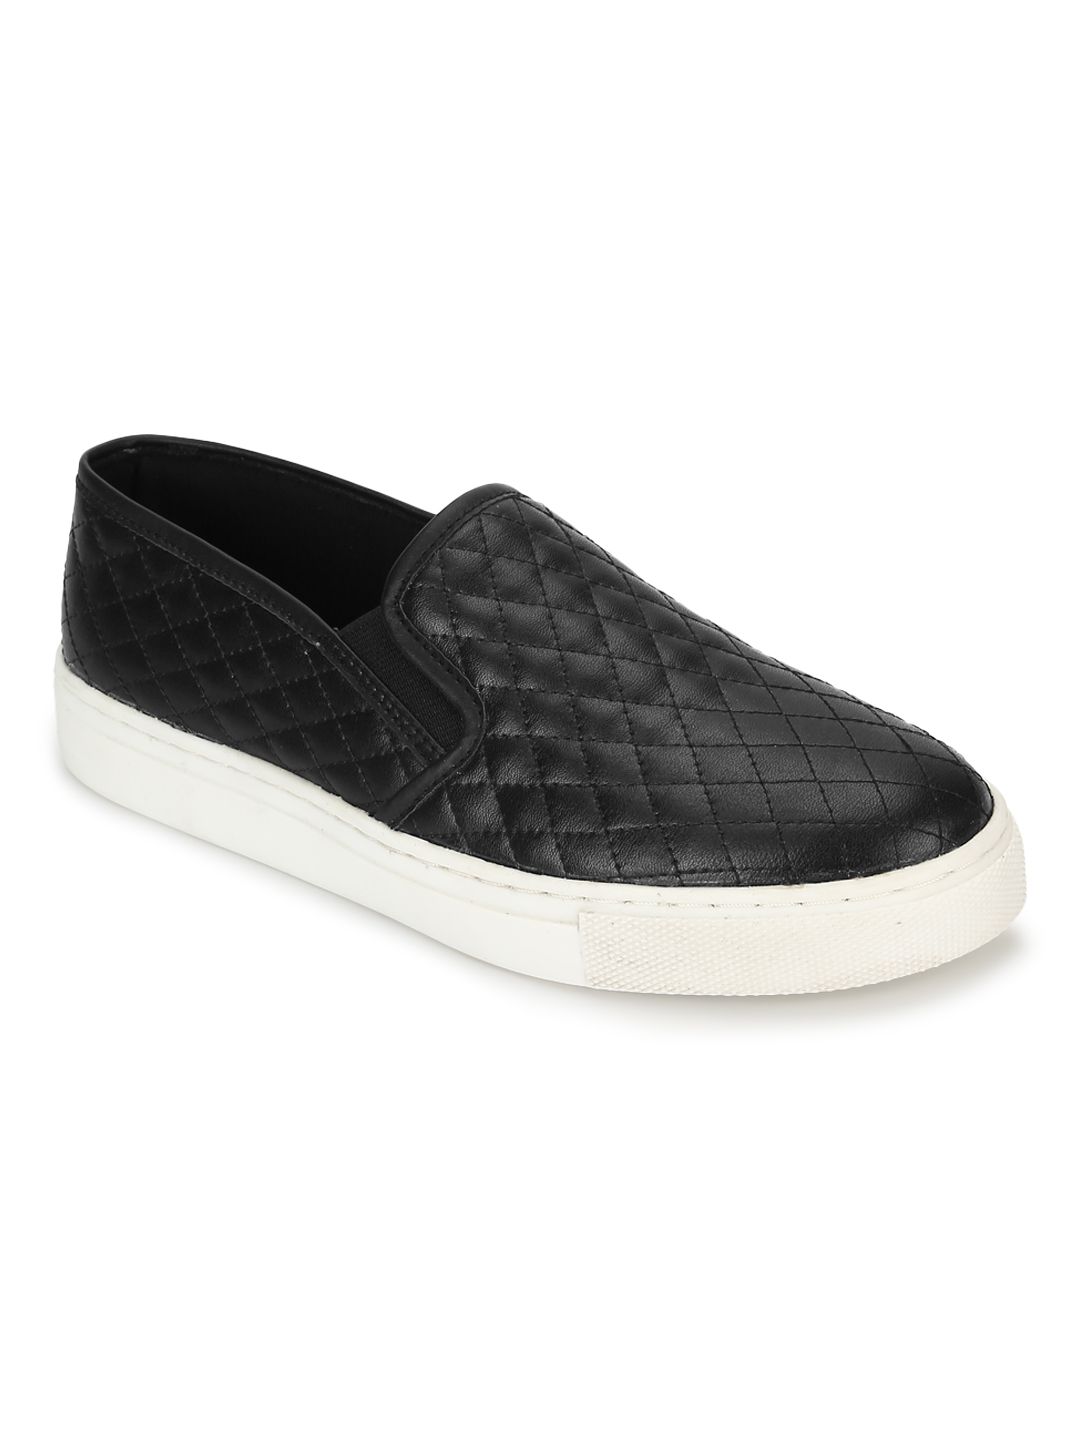 Truffle Collection | Truffle Collection Black PU Quilted Slip On Shoes